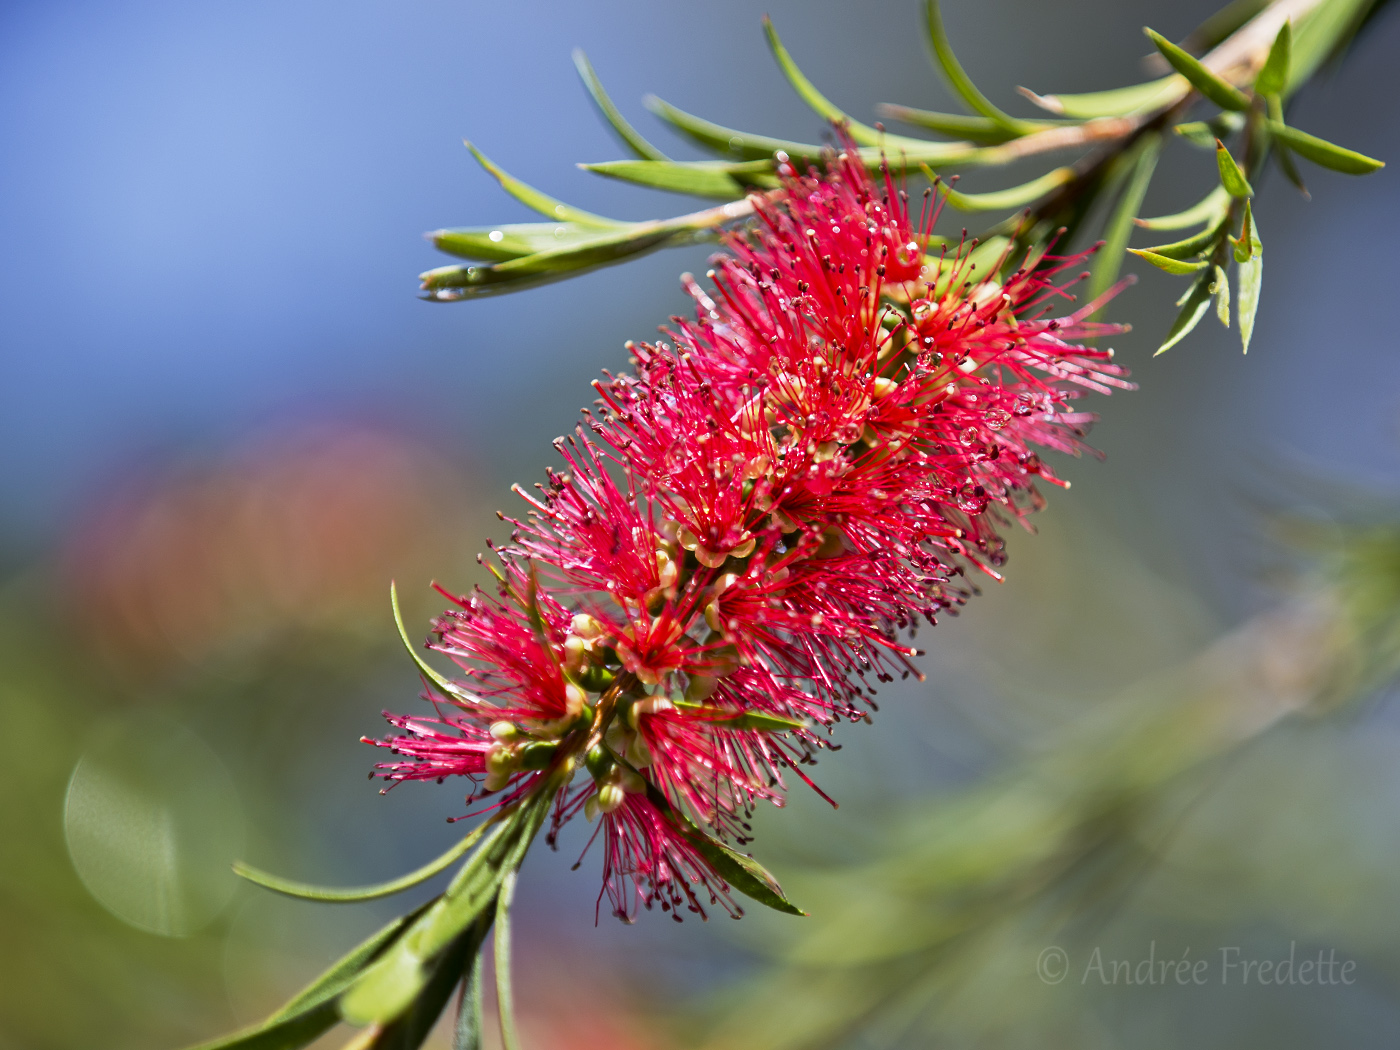 Bottlebrush, blooming in the garden in June. Photo by Andrée Fredette